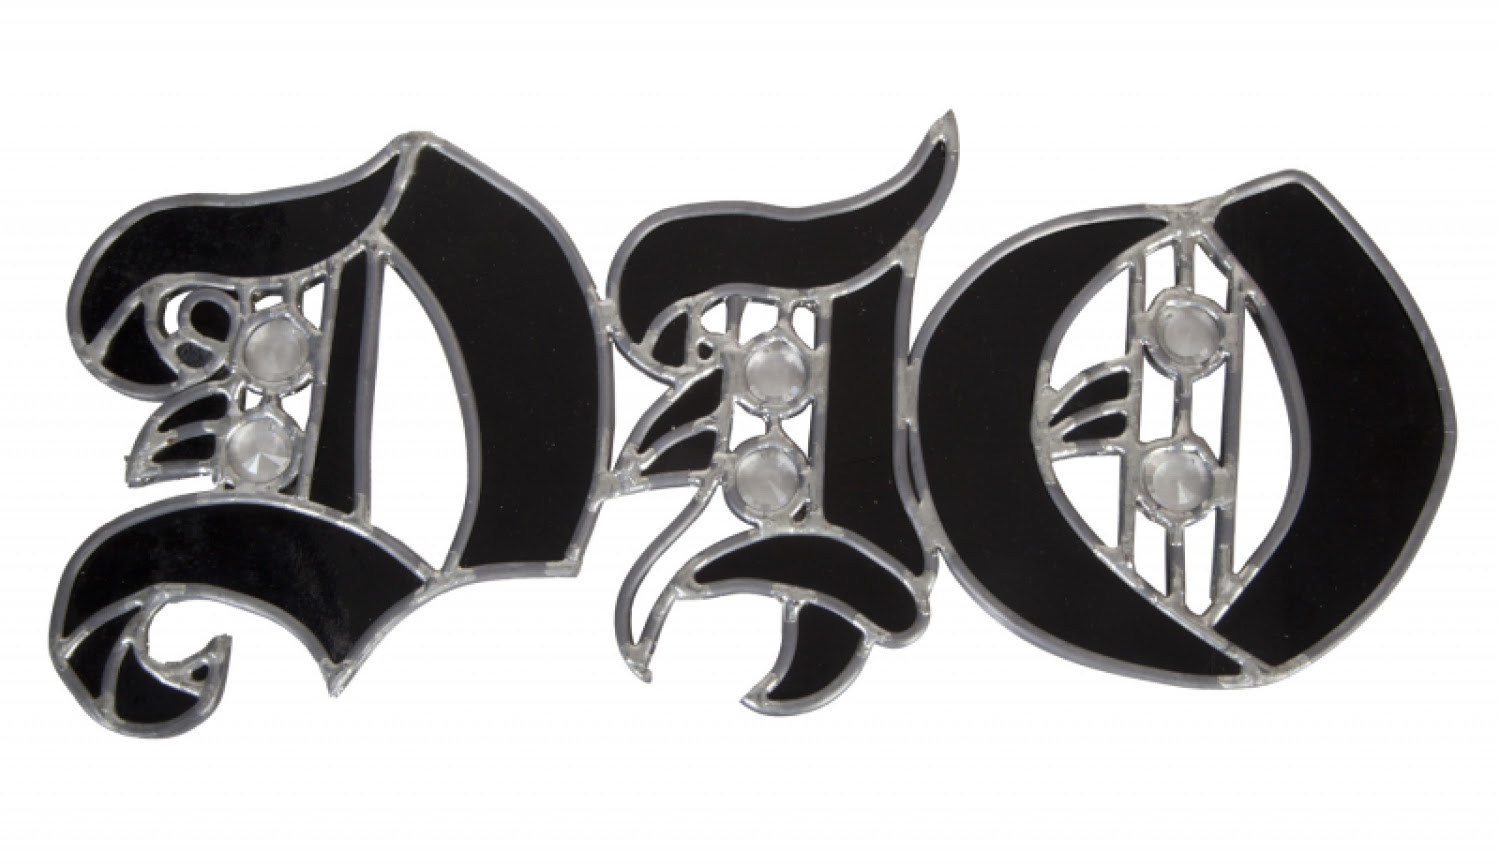 RONNIE JAMES DIO FAN ART STAINED GLASS PLAQUE